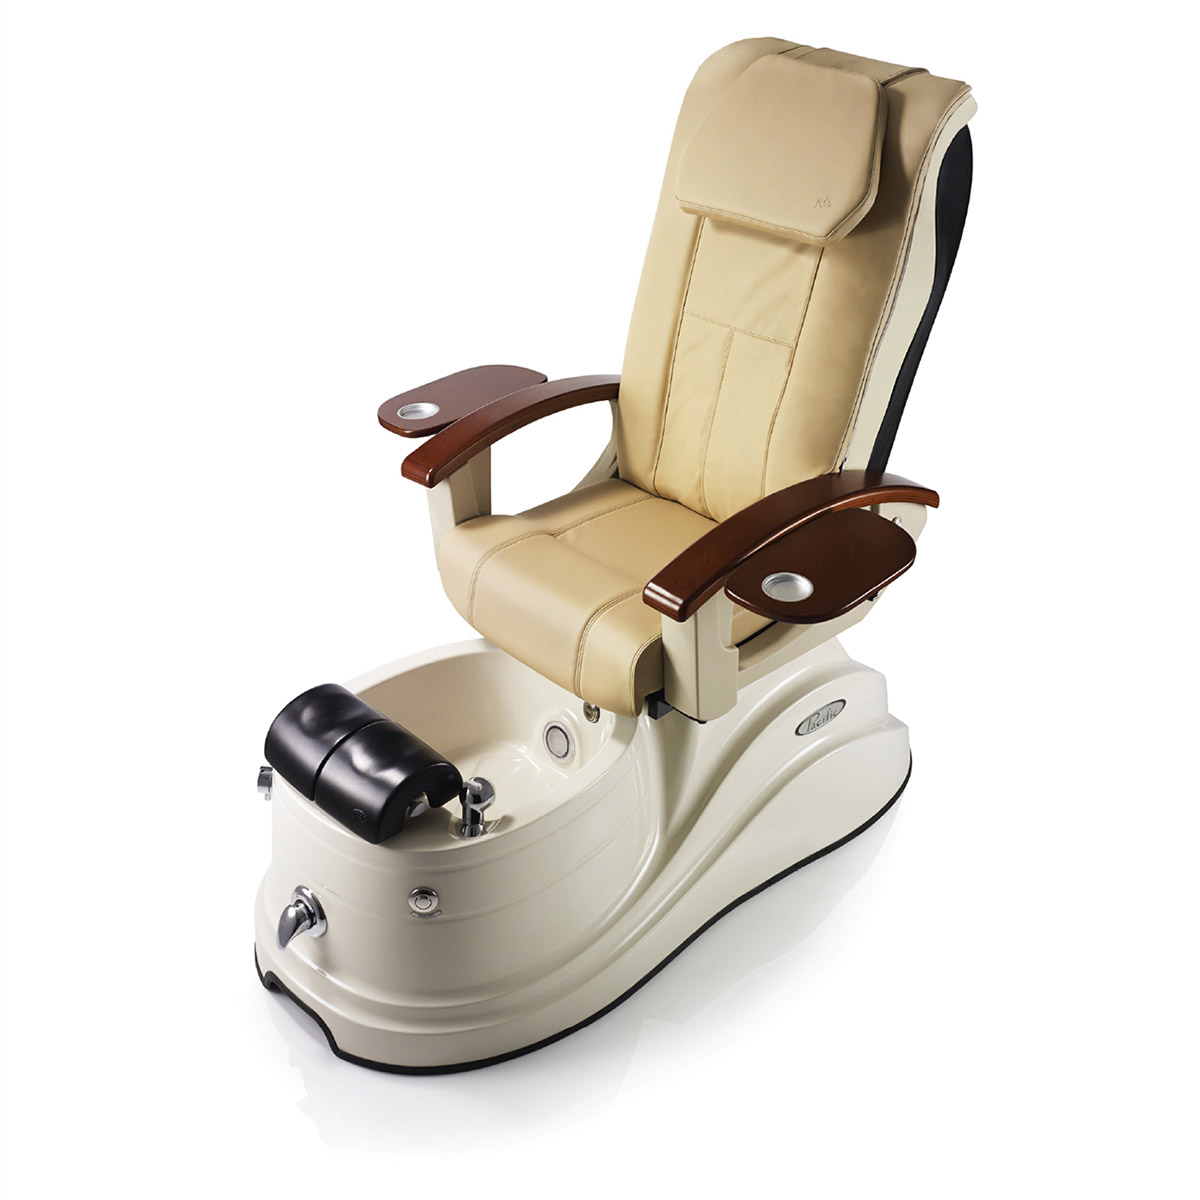 pedicure chair foot spa nail chair pedicure with pedicure chair manicure